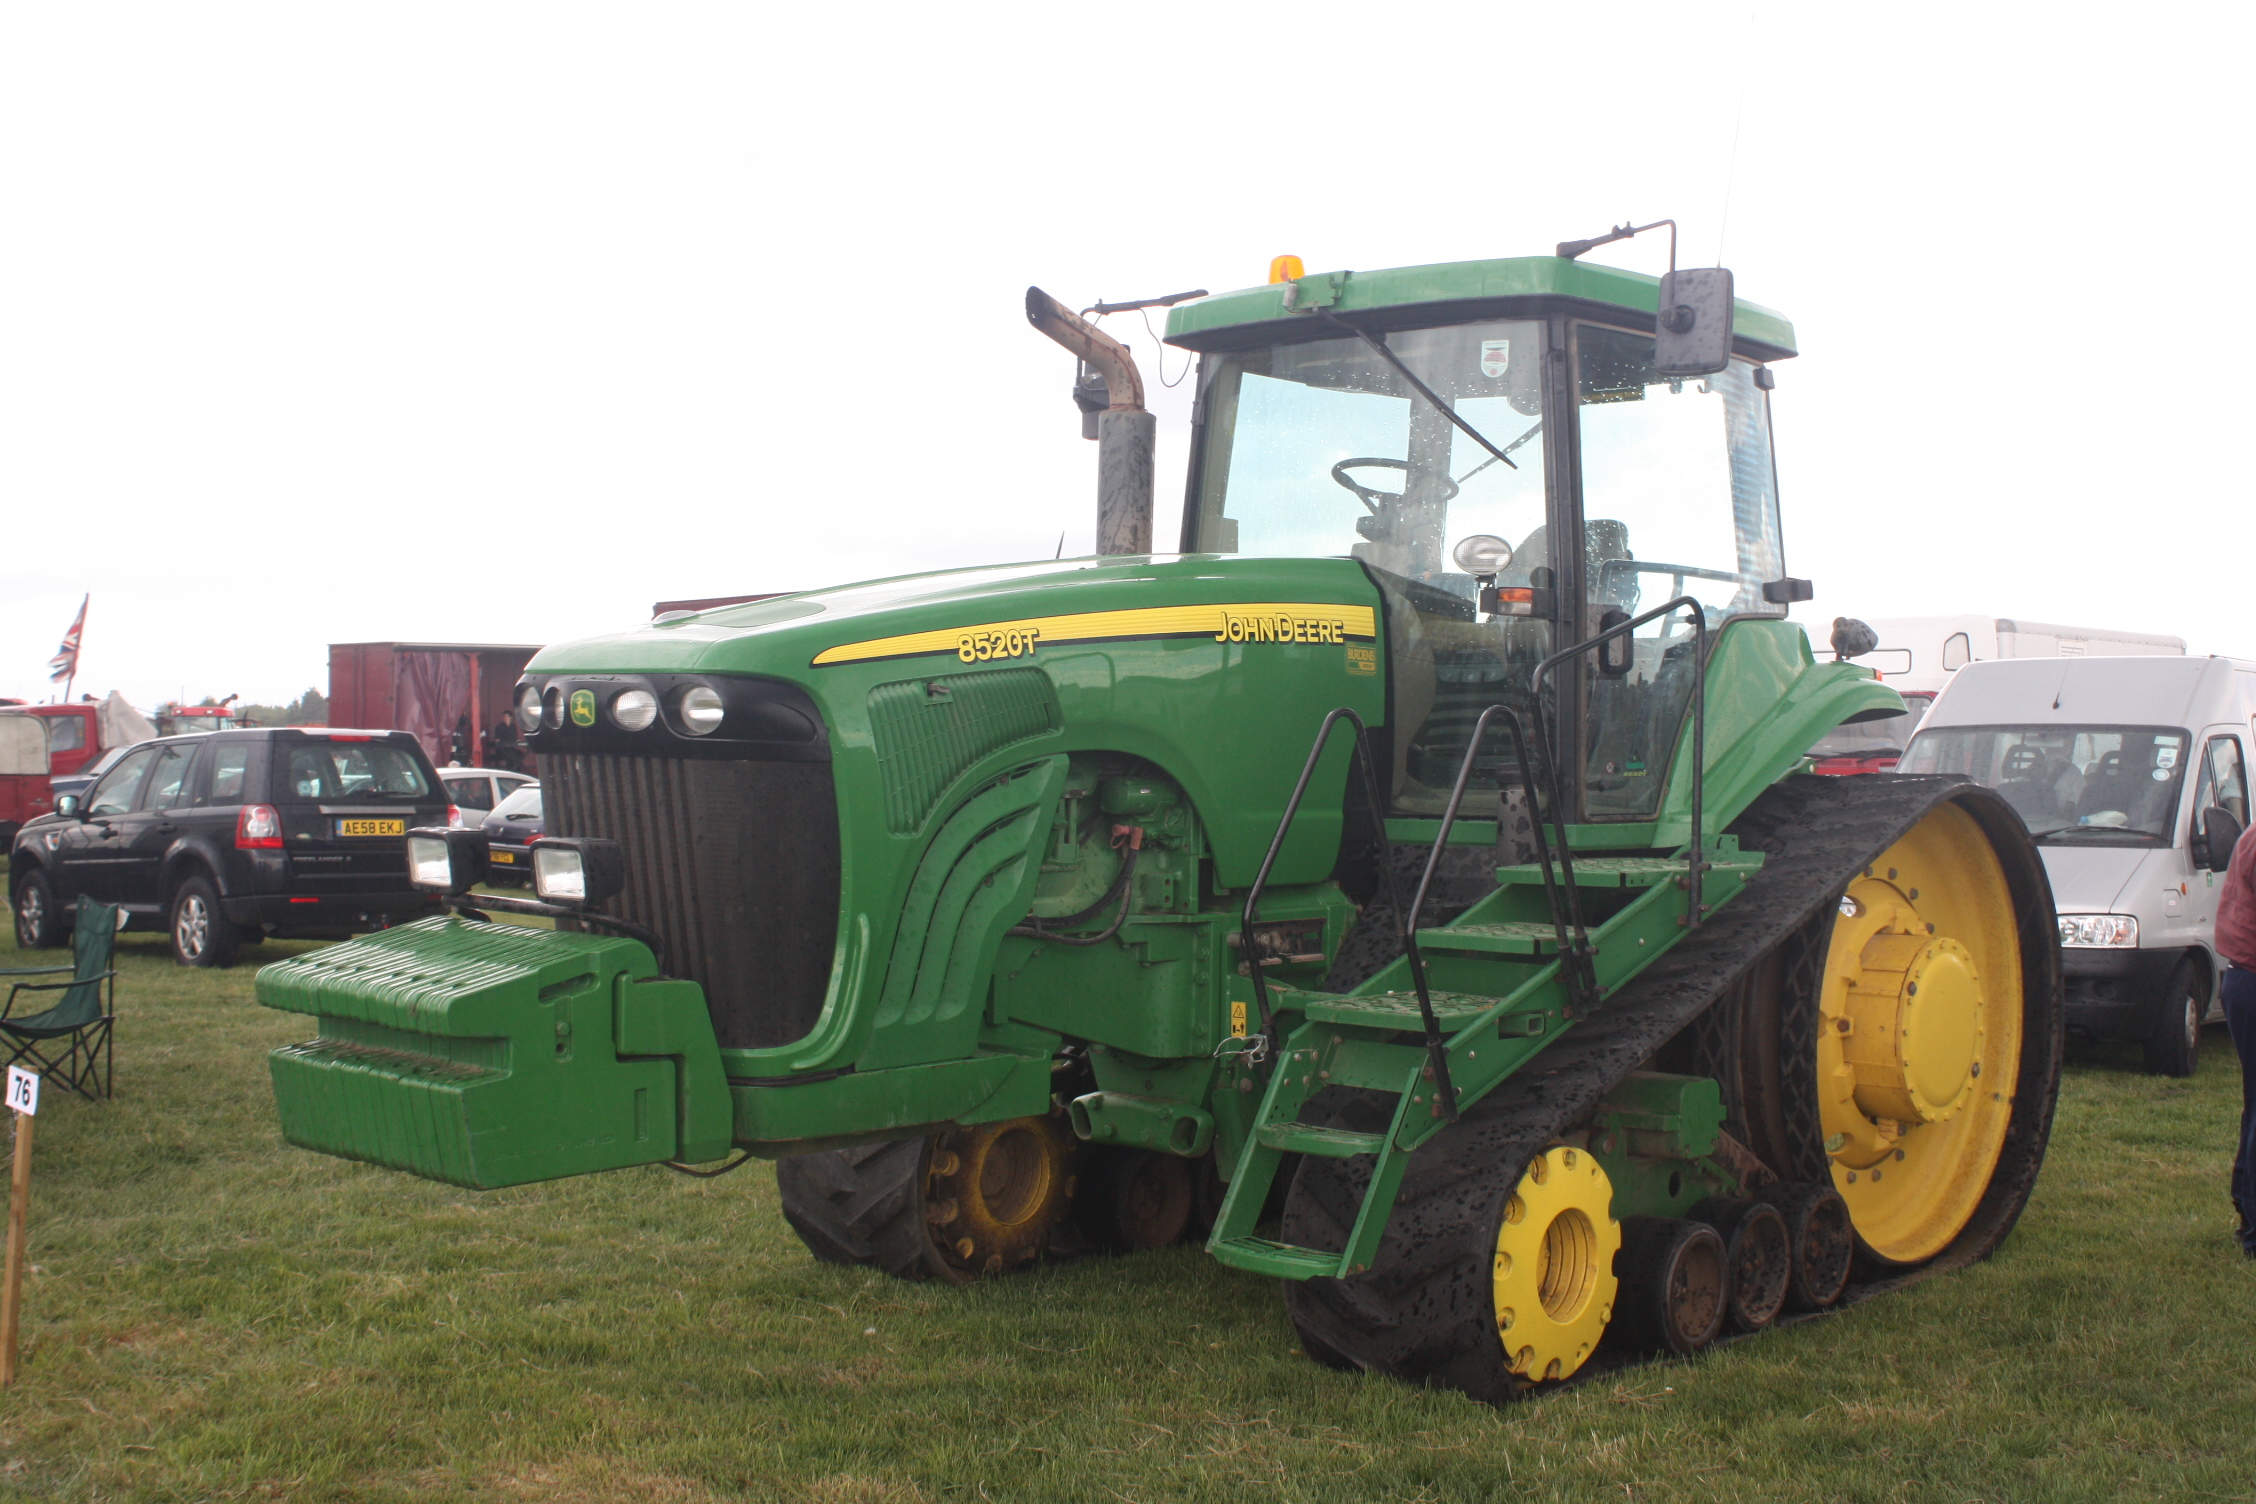 List Of John Deere Tractors Tractor Construction Plant Wiki Model B Engine Diagram A Modern Jd 8520t Crawler